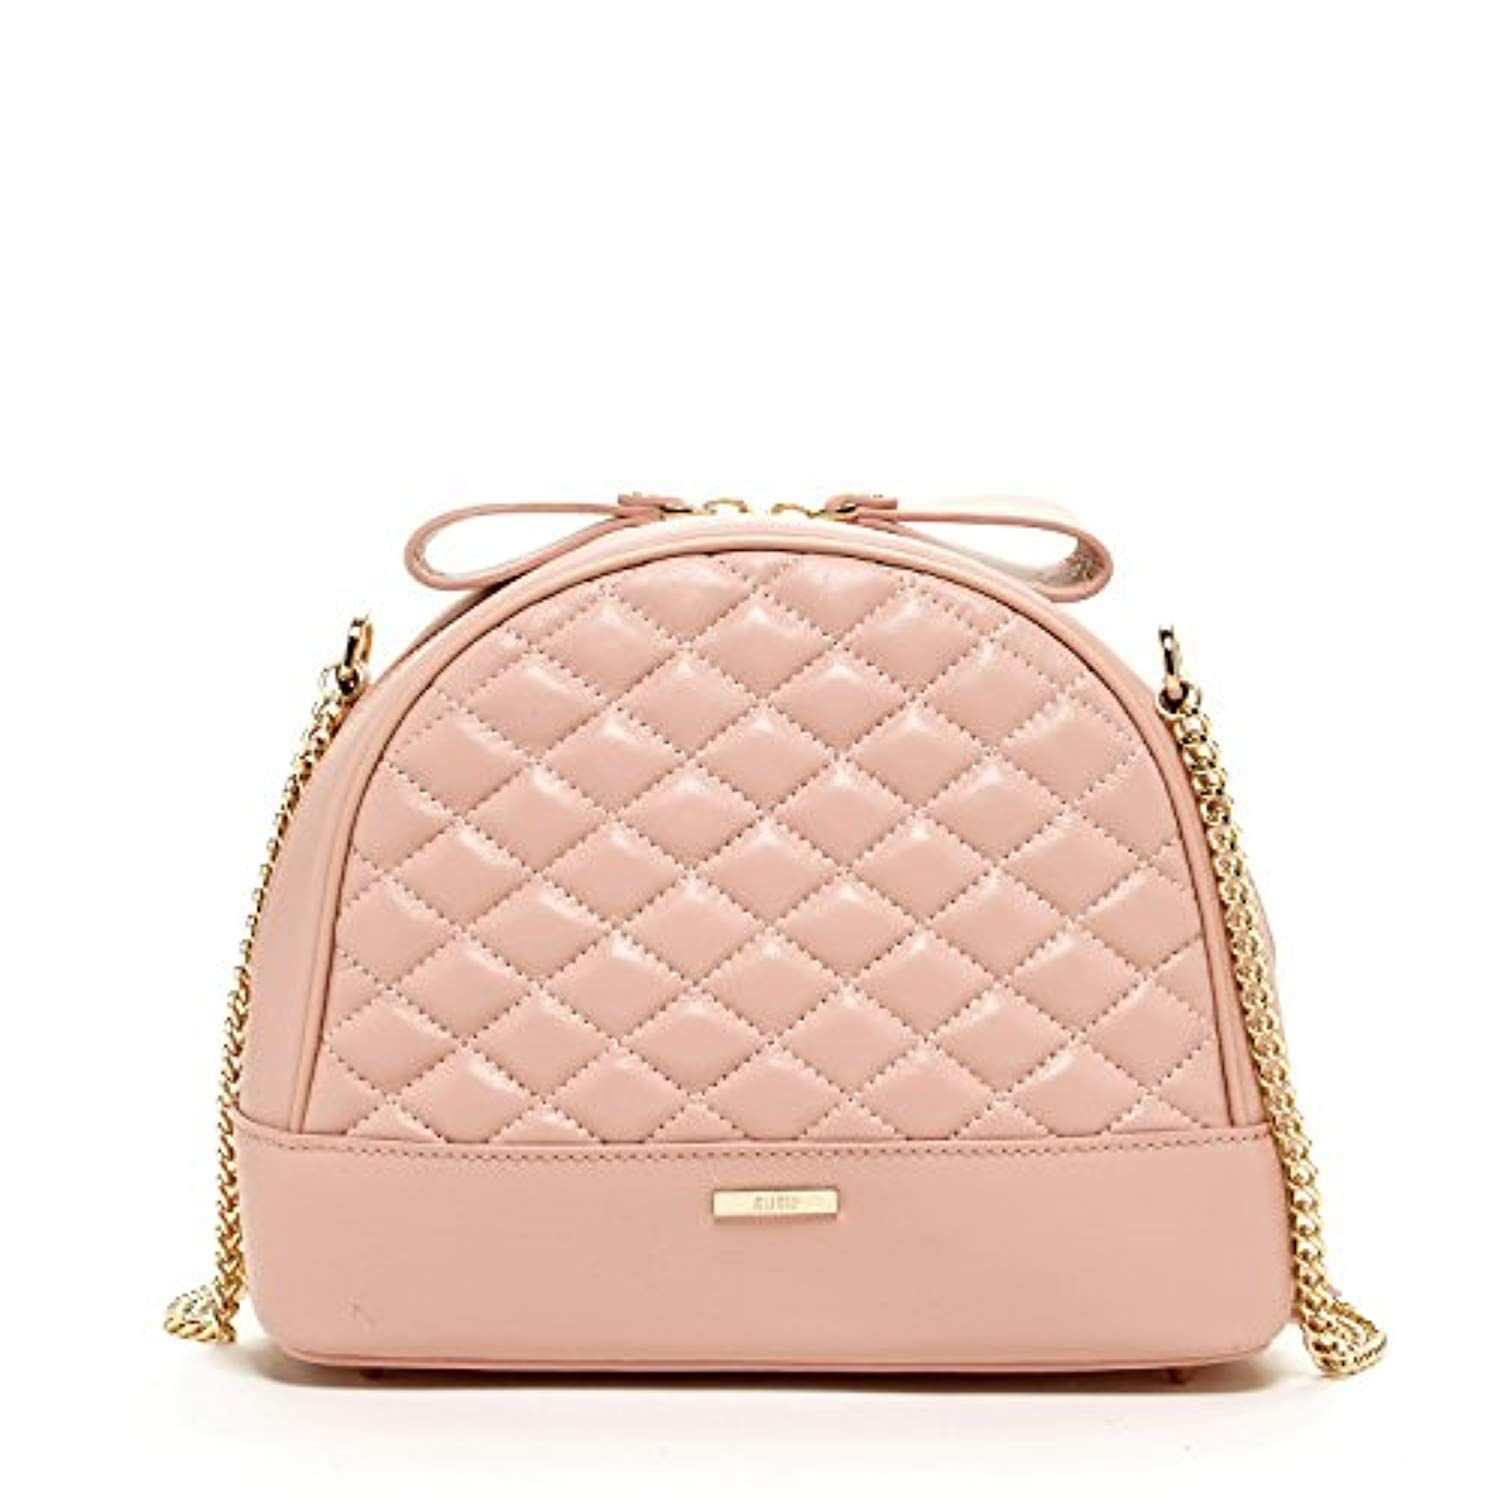 The France Quilted Lambskin Leather Crossbody Purse Designer Handbags Best  Crossbody Bags     Visit the image link more details. (This is an affiliate  link) ... d8f2985235aae